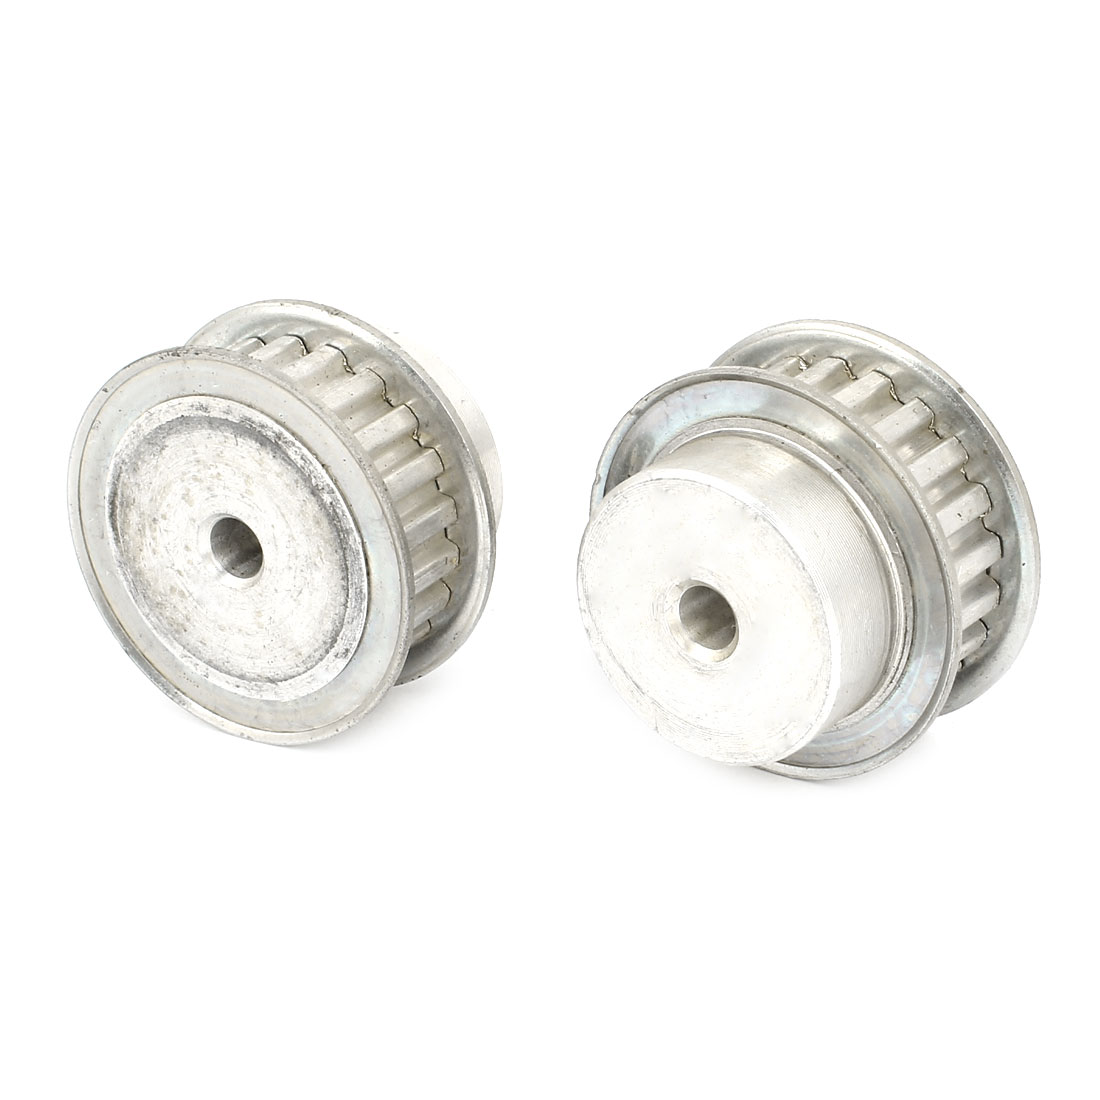 2 Pcs Stainless Steel XL Type 21T 6mm Pitch 6mm Diameter Bore Timing Belt Pulley